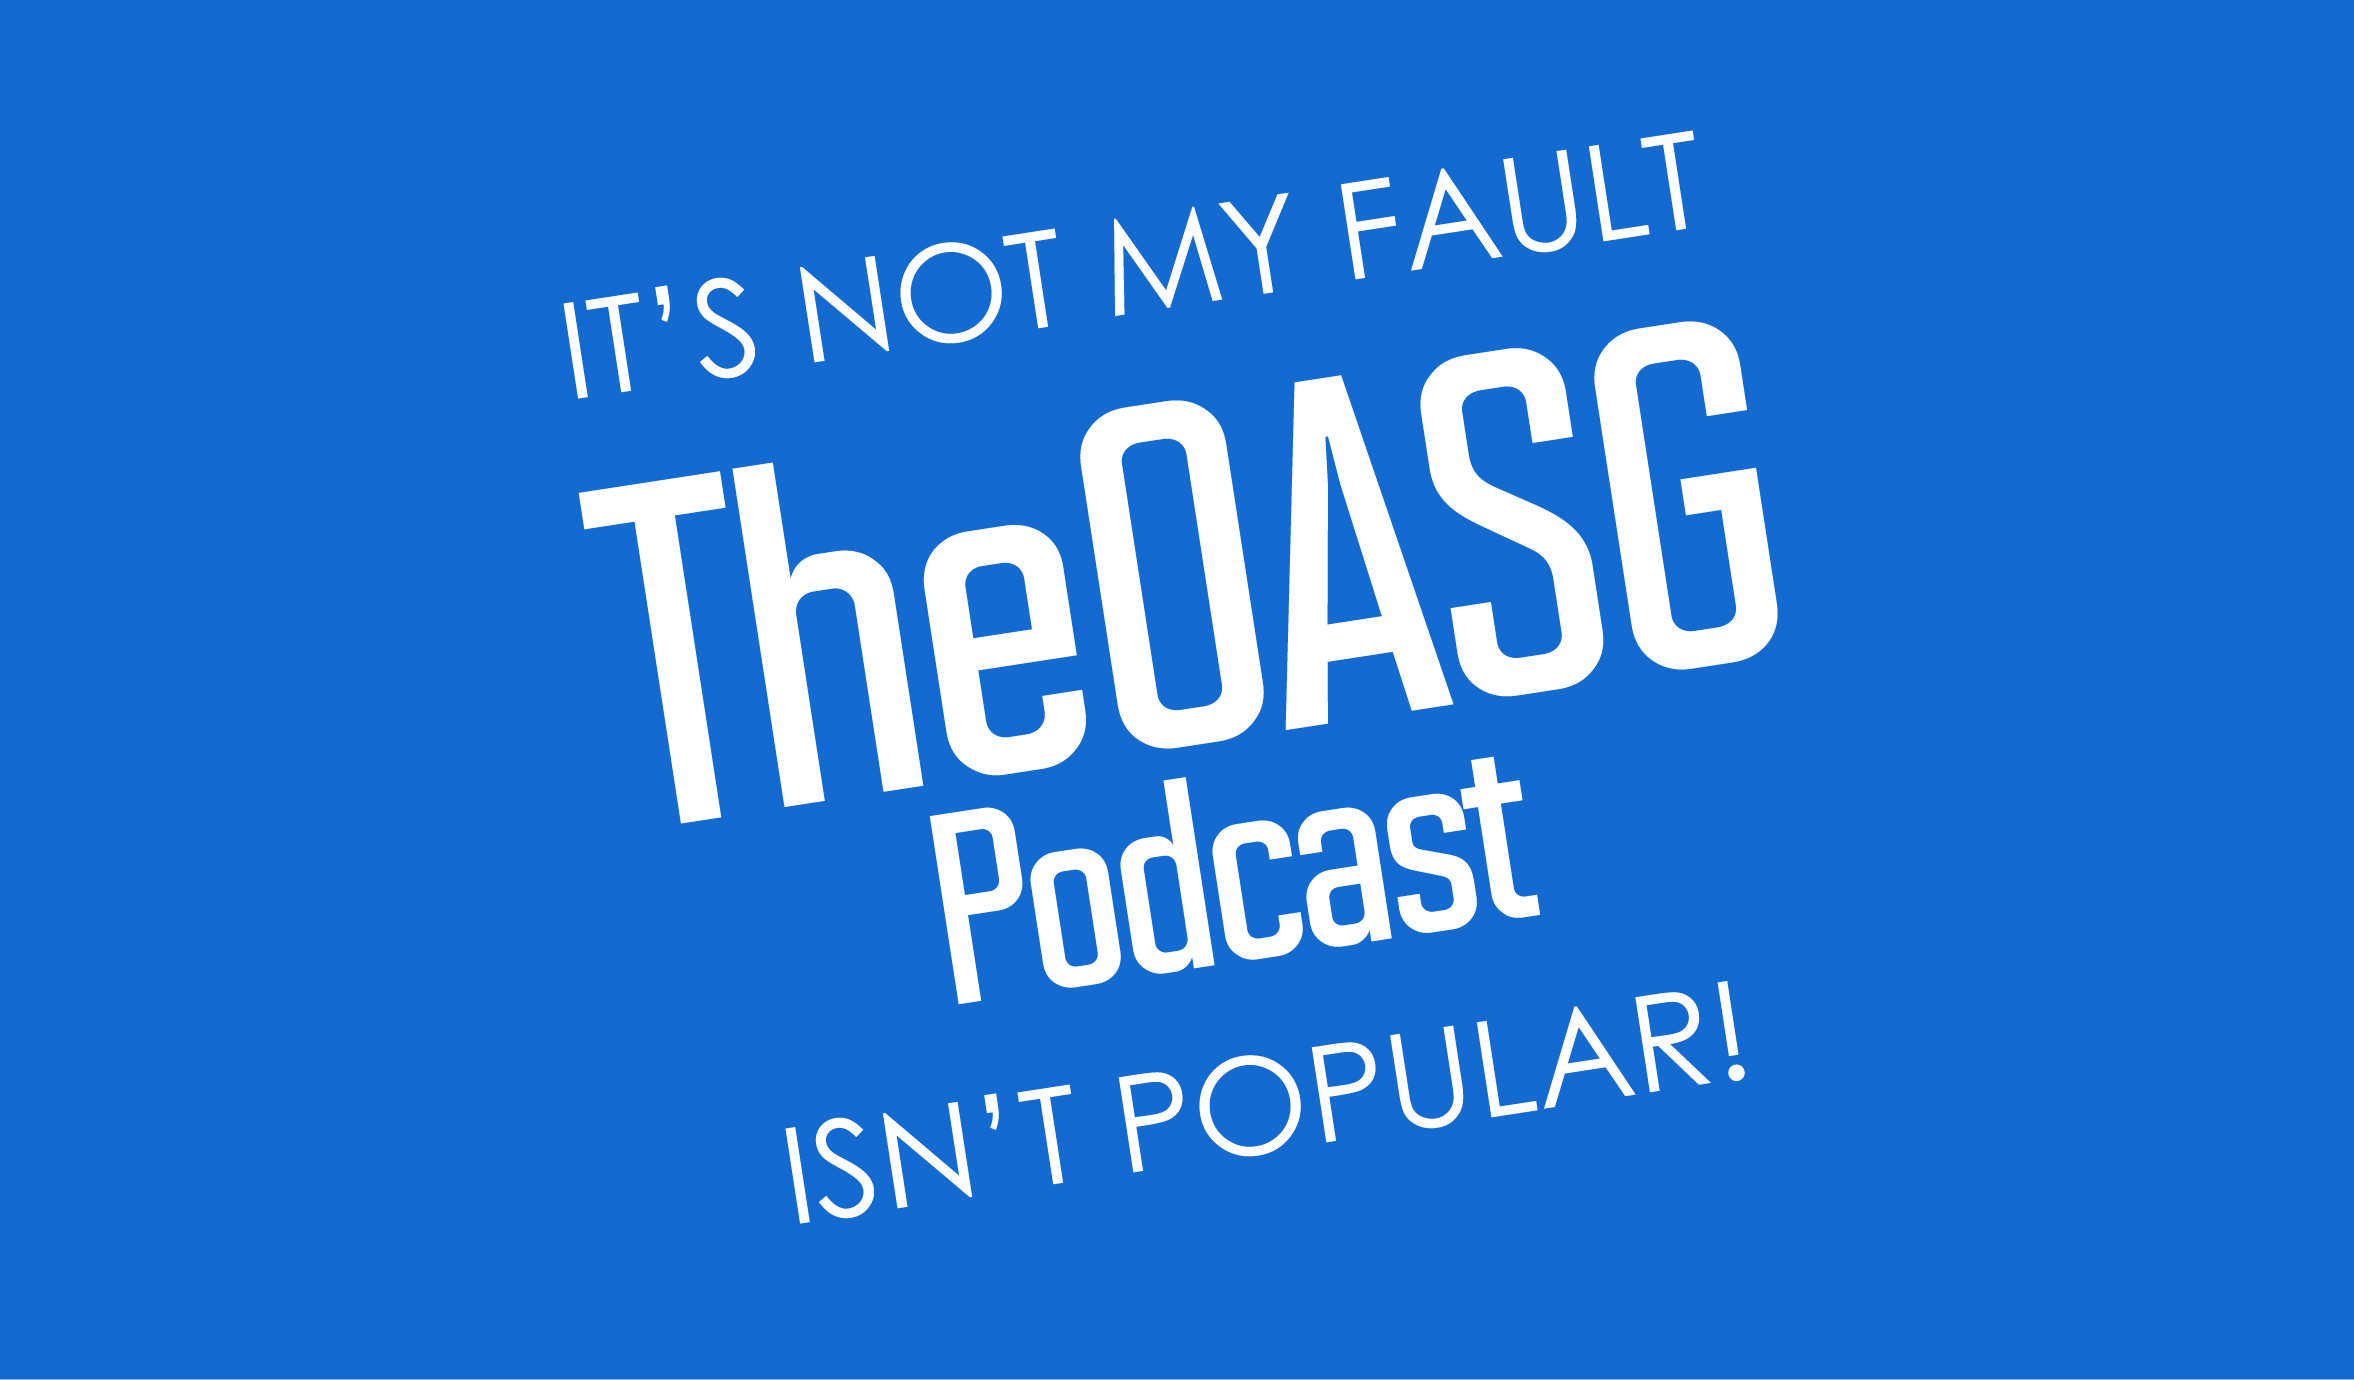 Featured image for TheOASG Podcast Episode 127: What a Summer Season Indeed